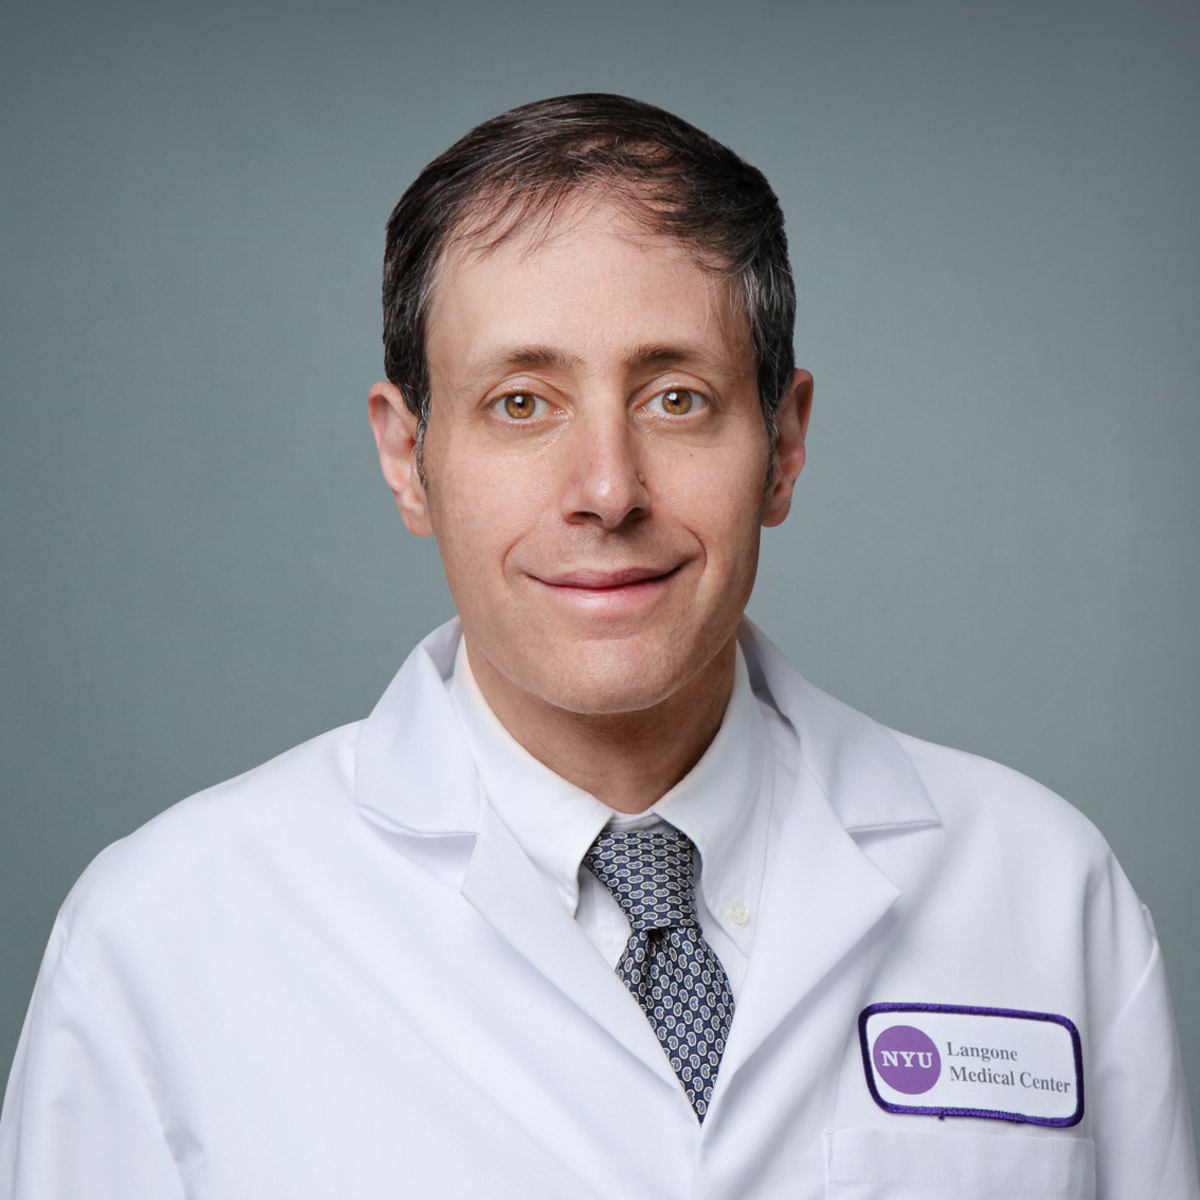 David J. Araten,MD. Hematology, Medical Oncology